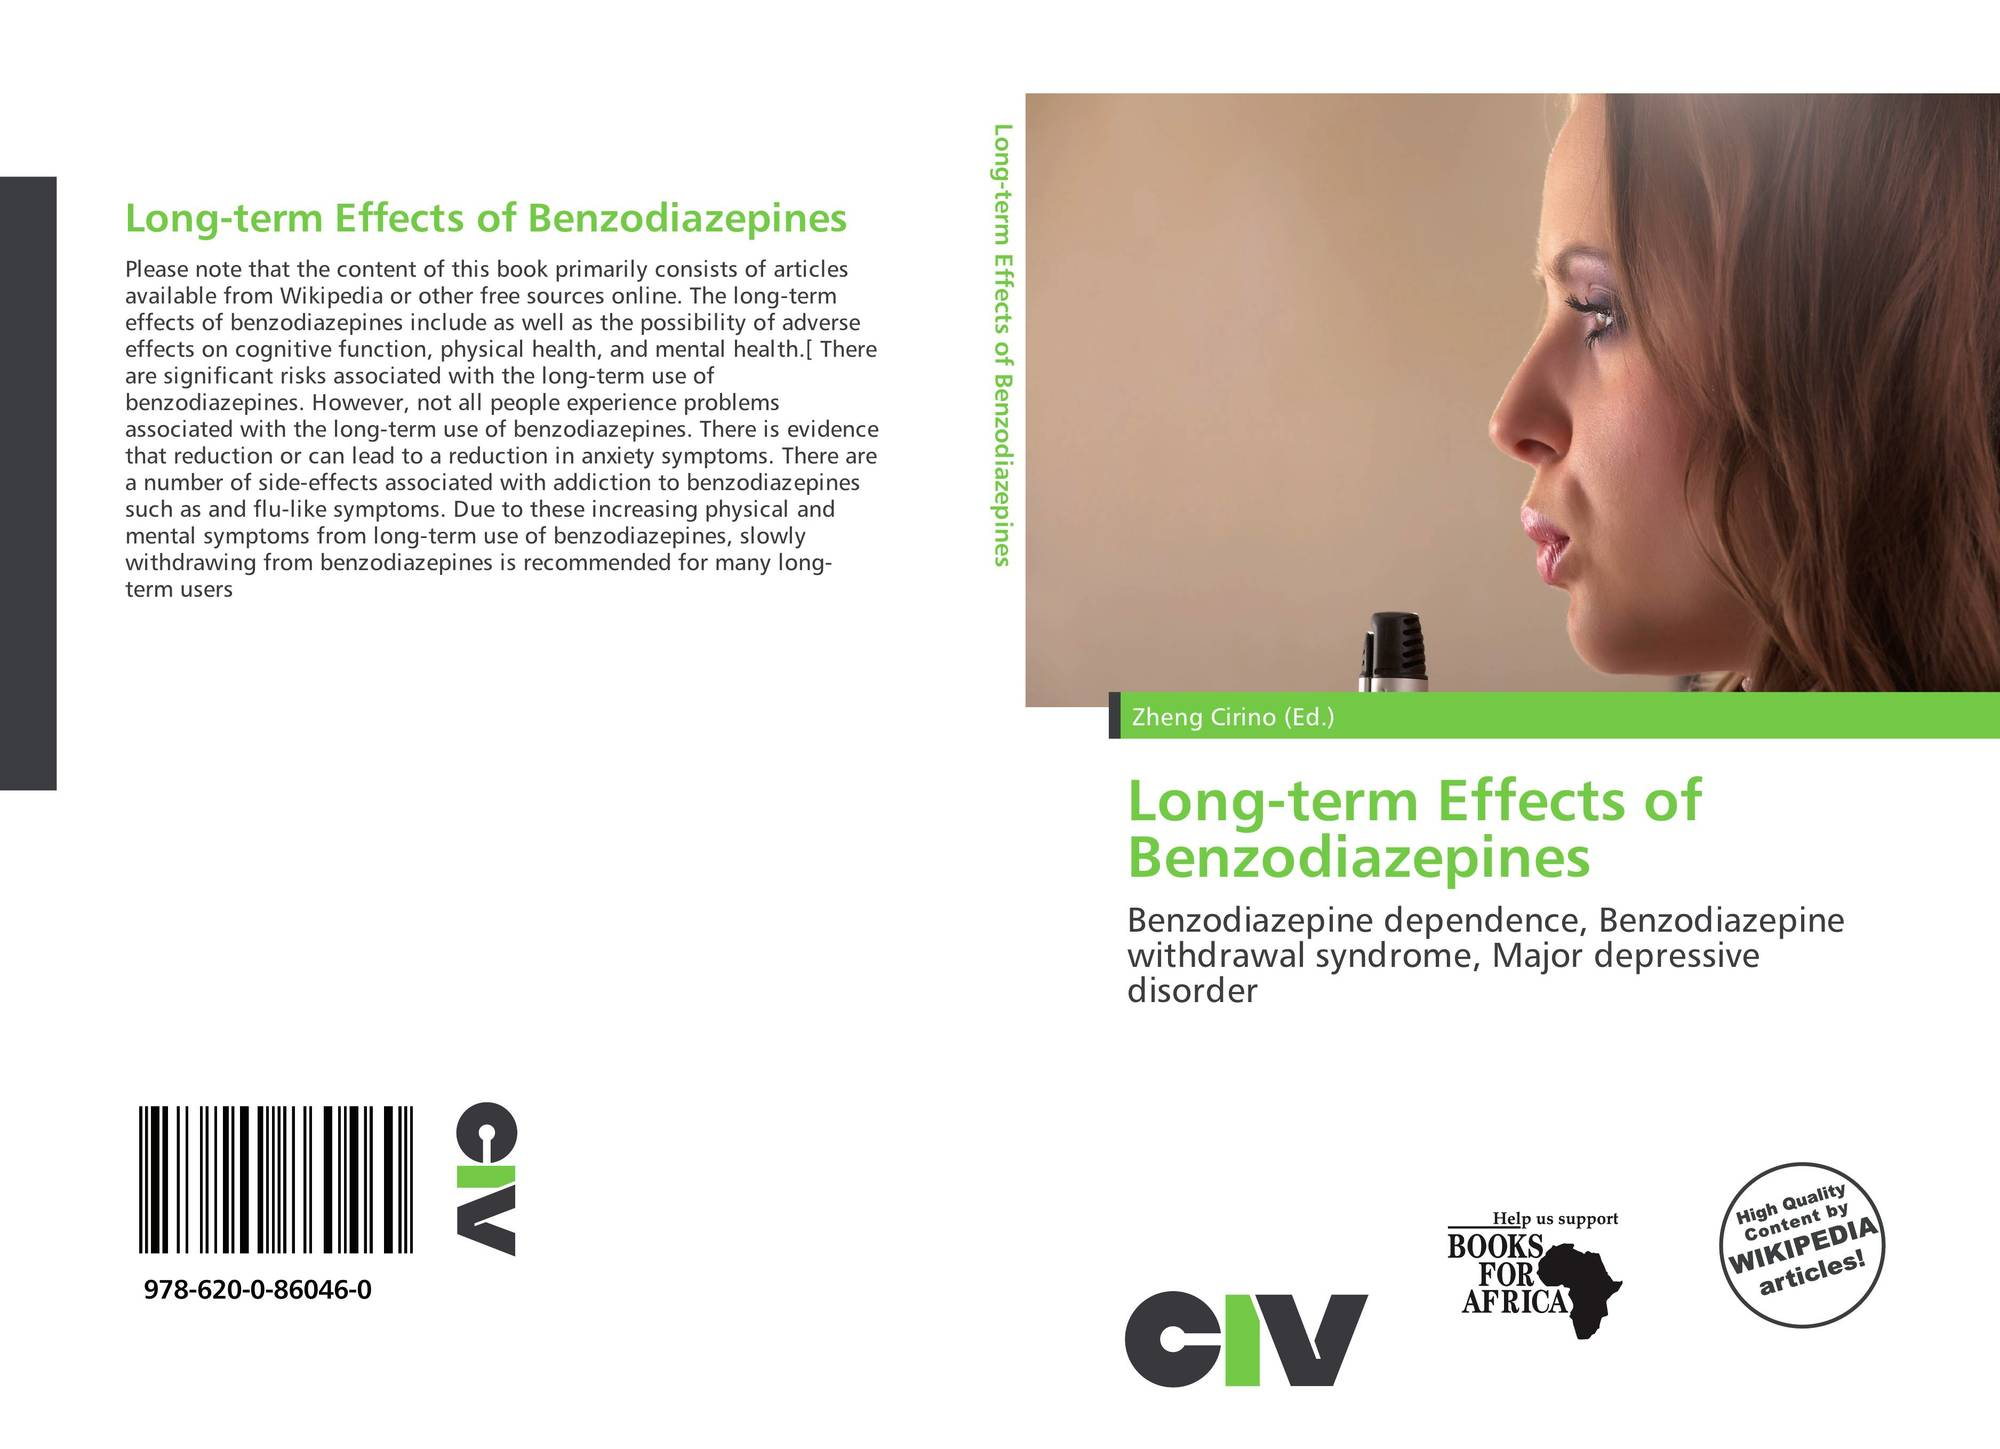 Long-term Effects of Benzodiazepines, 978-620-0-86046-0